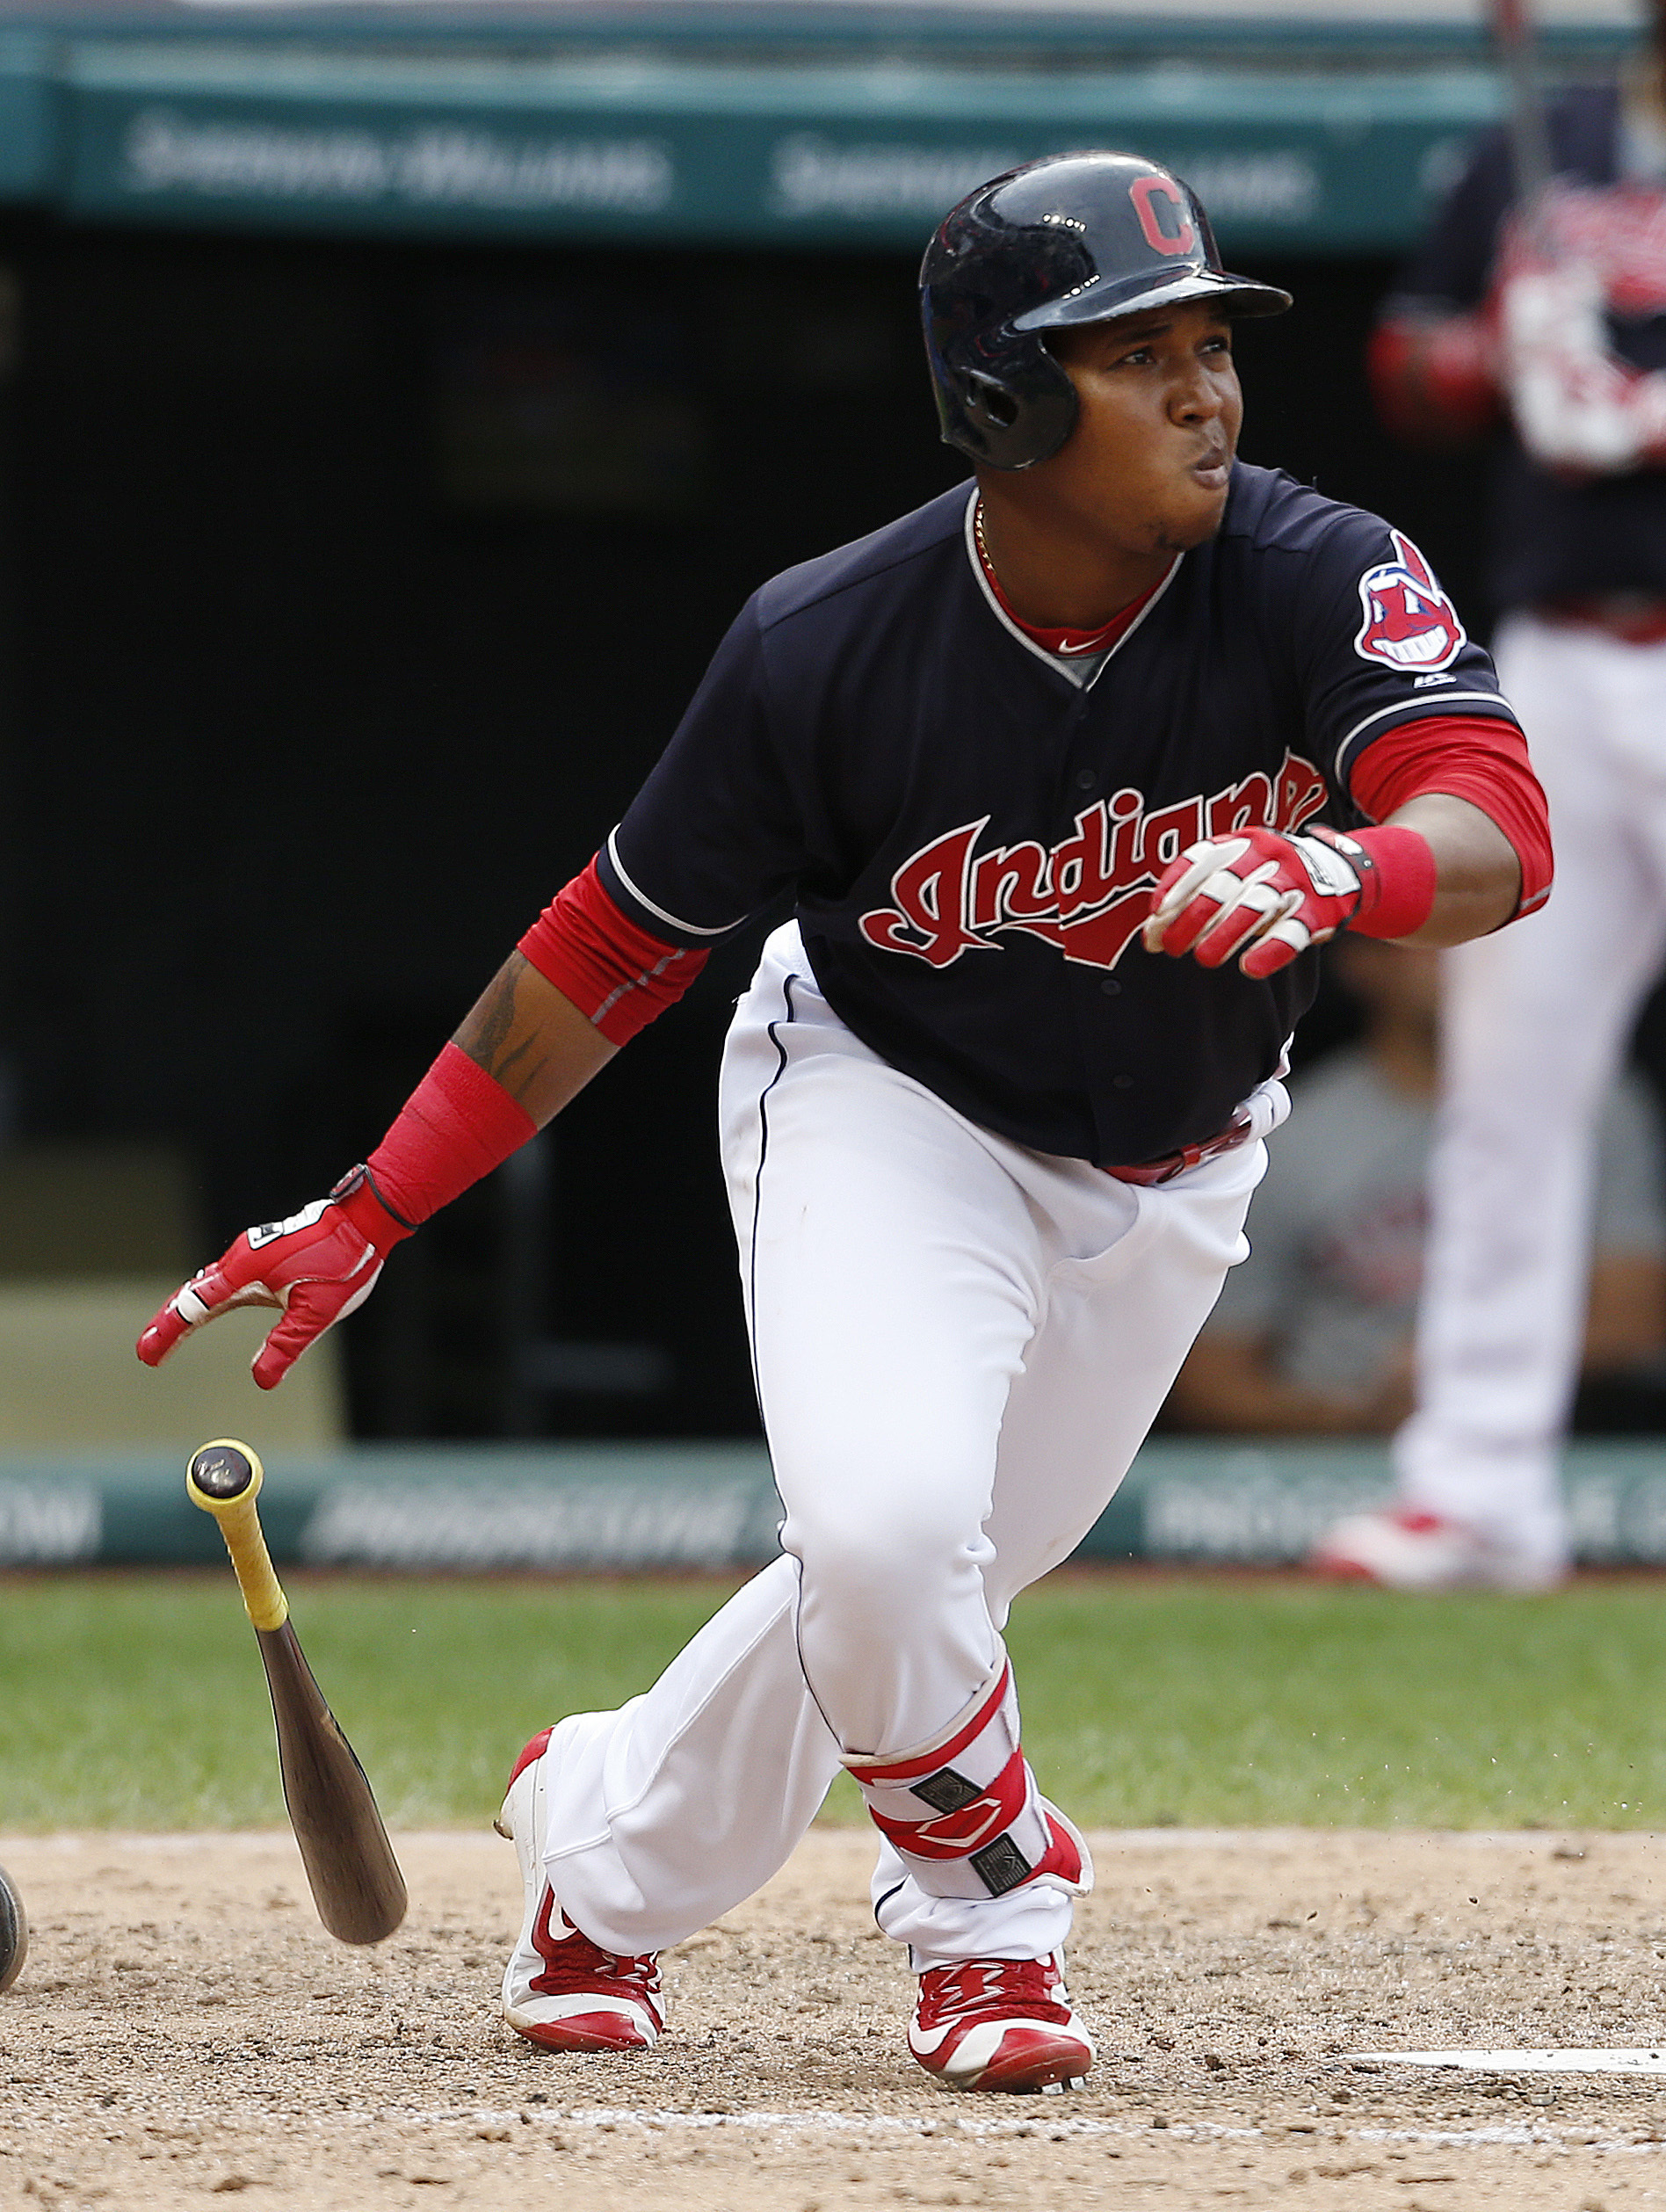 Cleveland Indians' Jose Ramirez hits an RBI-single off New York Yankees relief pitcher Dellin Betances during the seventh inning of a baseball game Saturday, July 9, 2016, in Cleveland. (AP Photo/Ron Schwane)